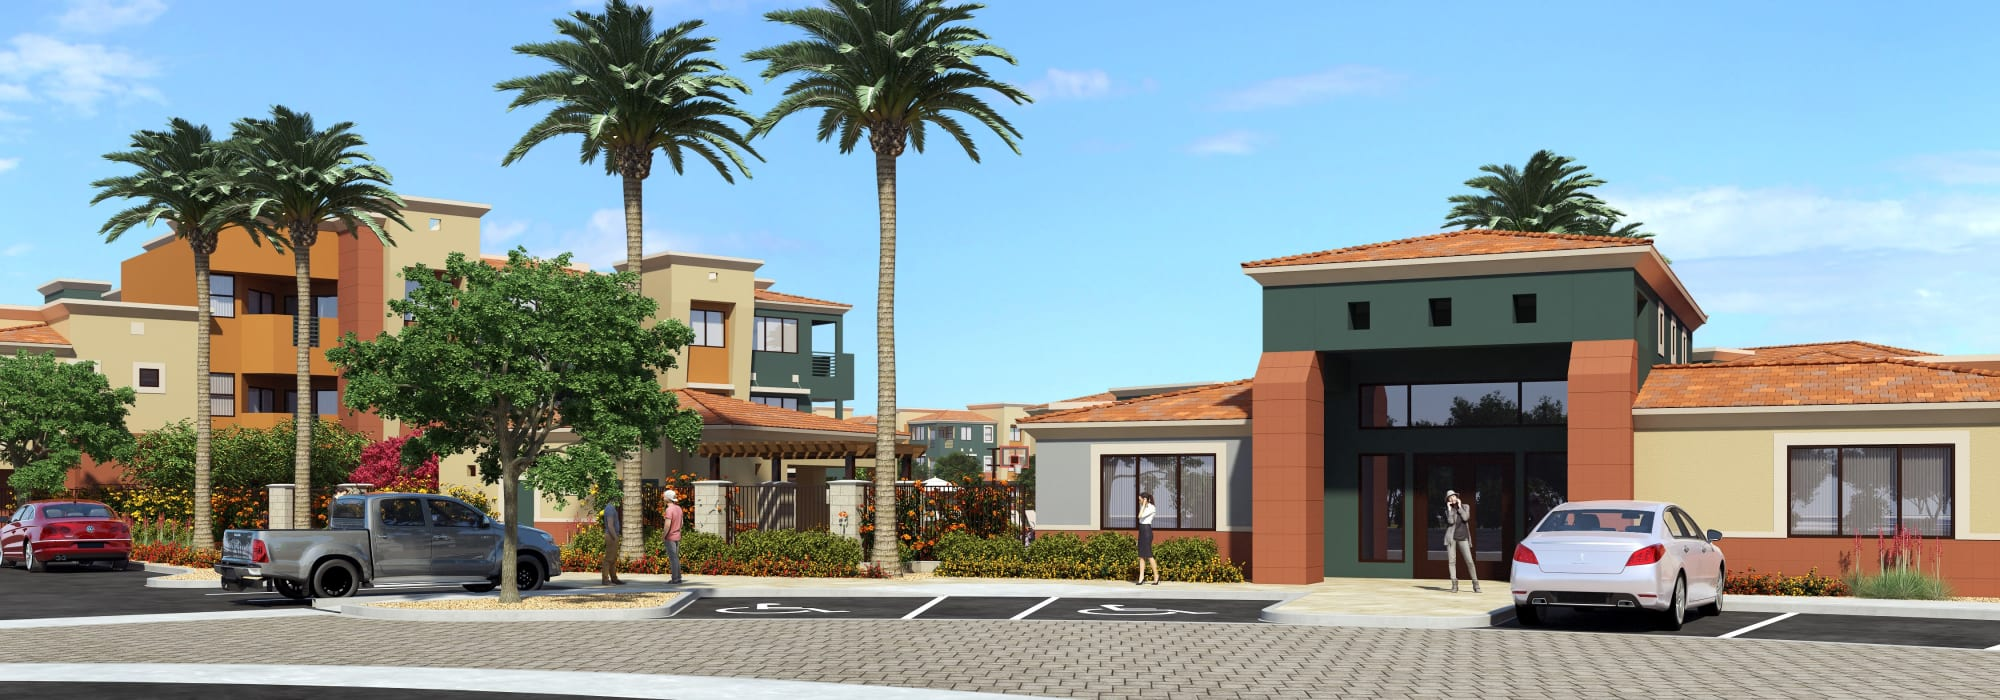 Resort-style front entrance at Villa Vita Apartments in Peoria, Arizona